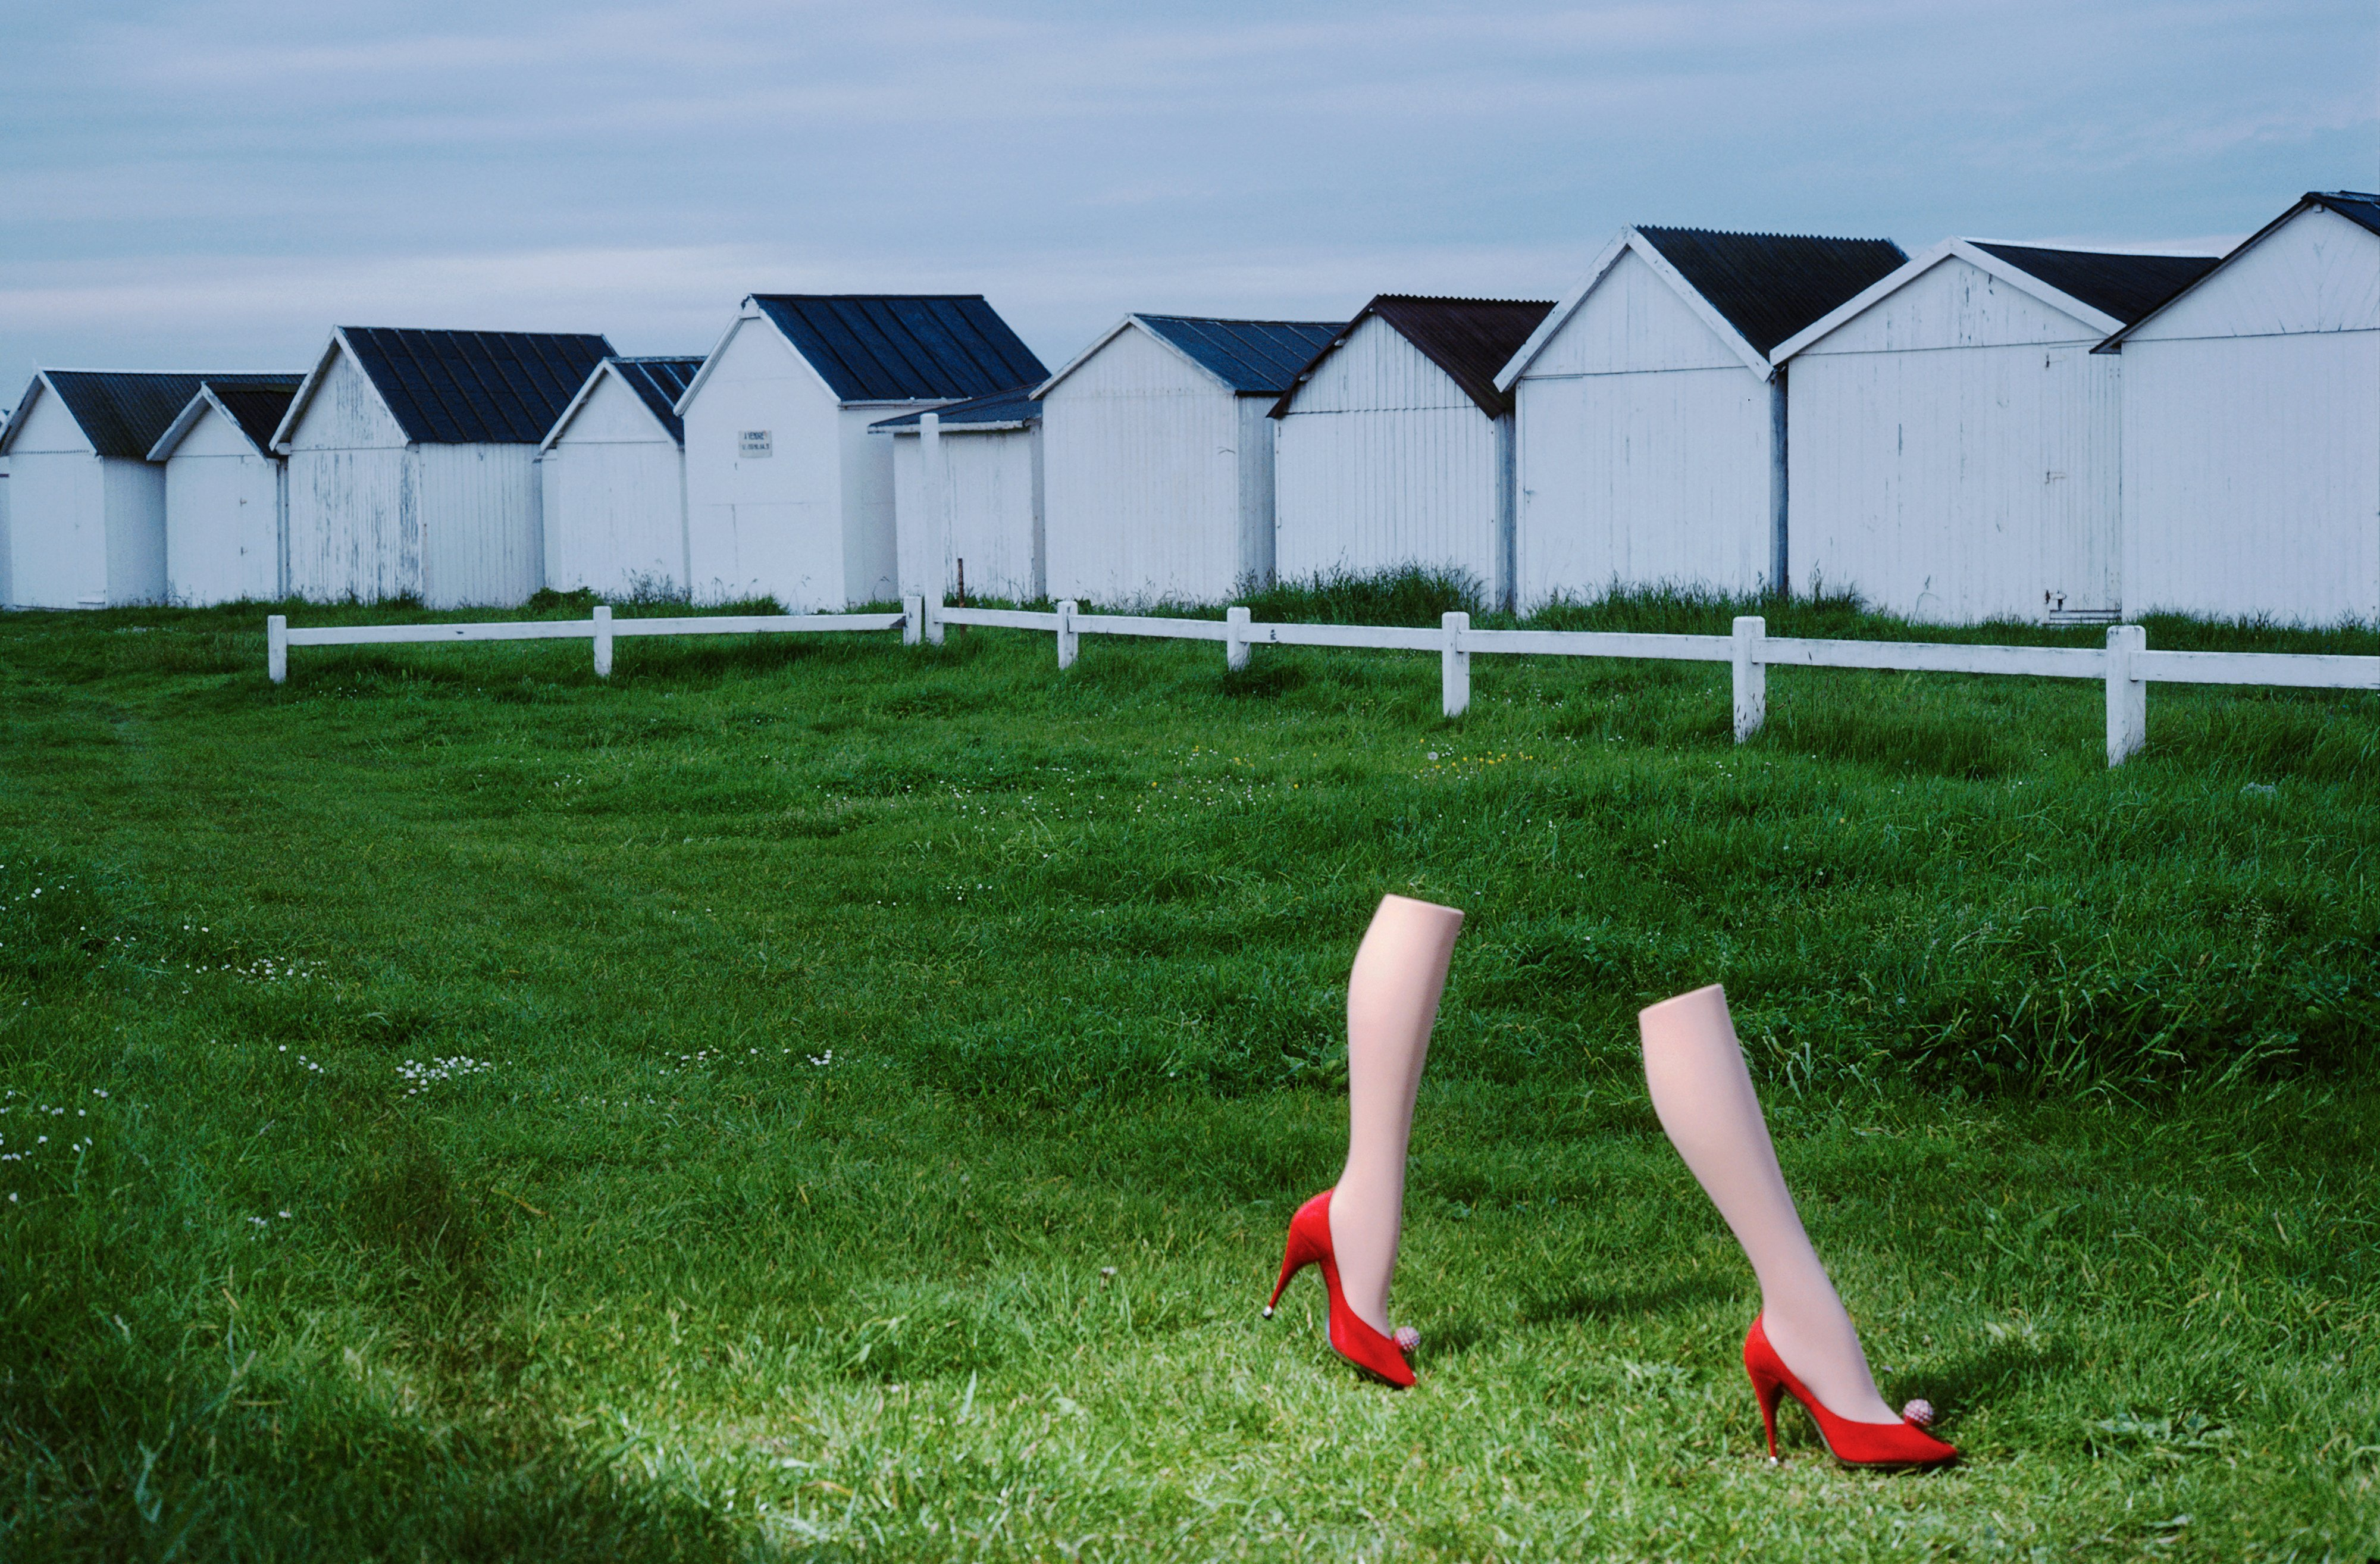 Charles Jourdan 1979 The Guy Bourdin Estate 2019 Courtesy Art And Cpmmerce